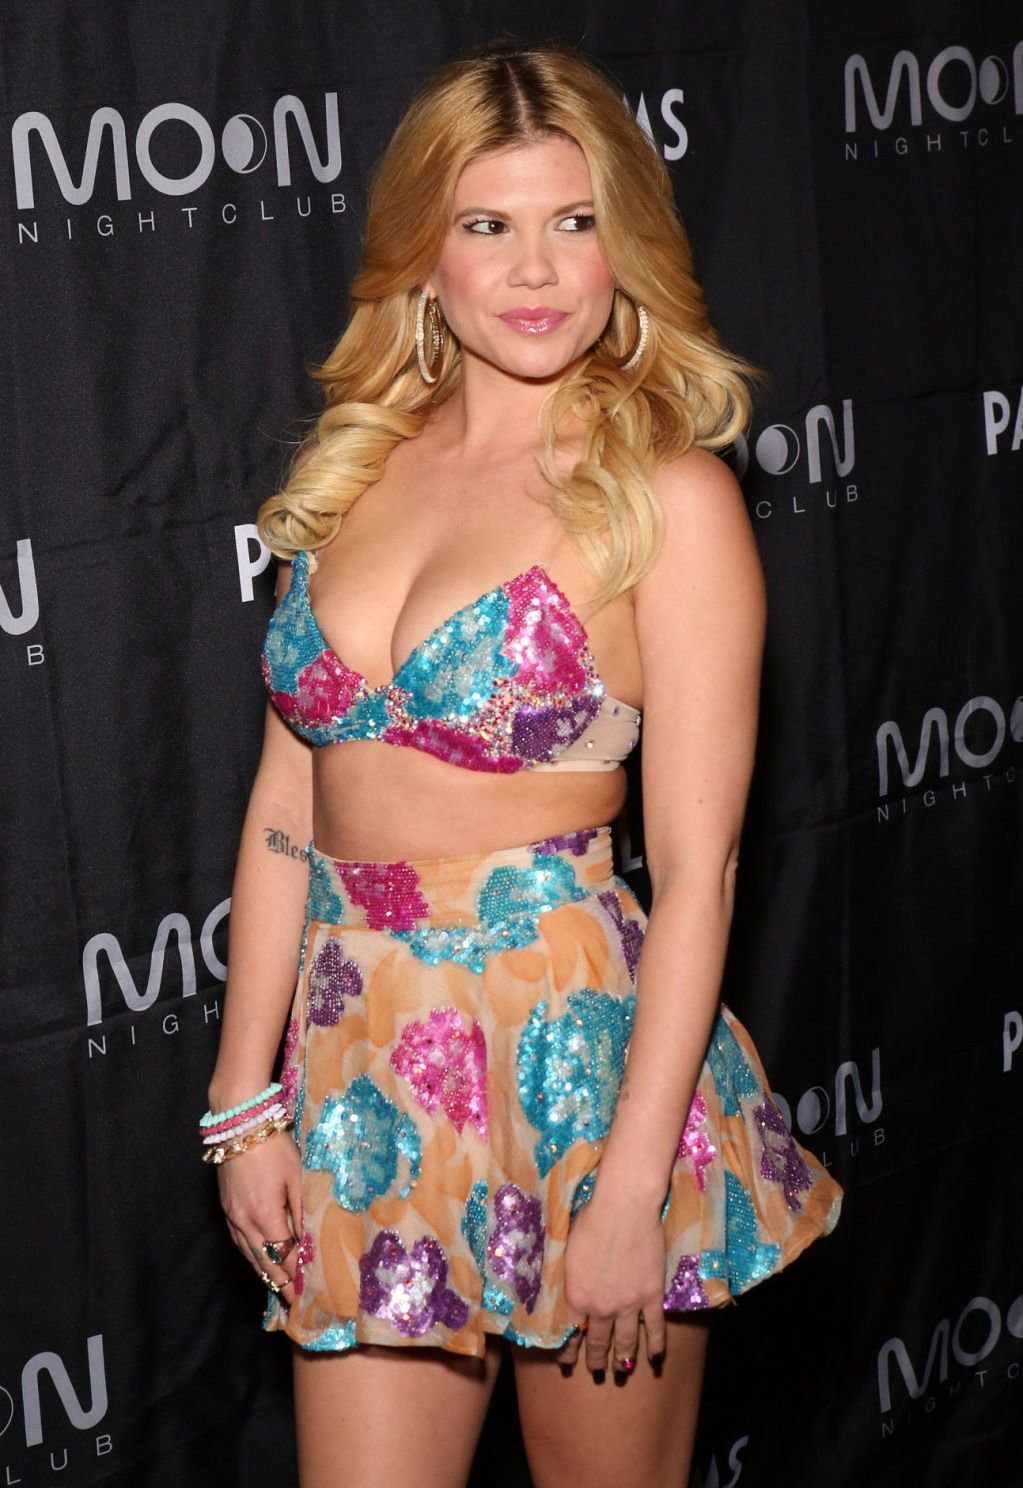 Chanel West Coast Hot Photos, Sexy Bikini Images